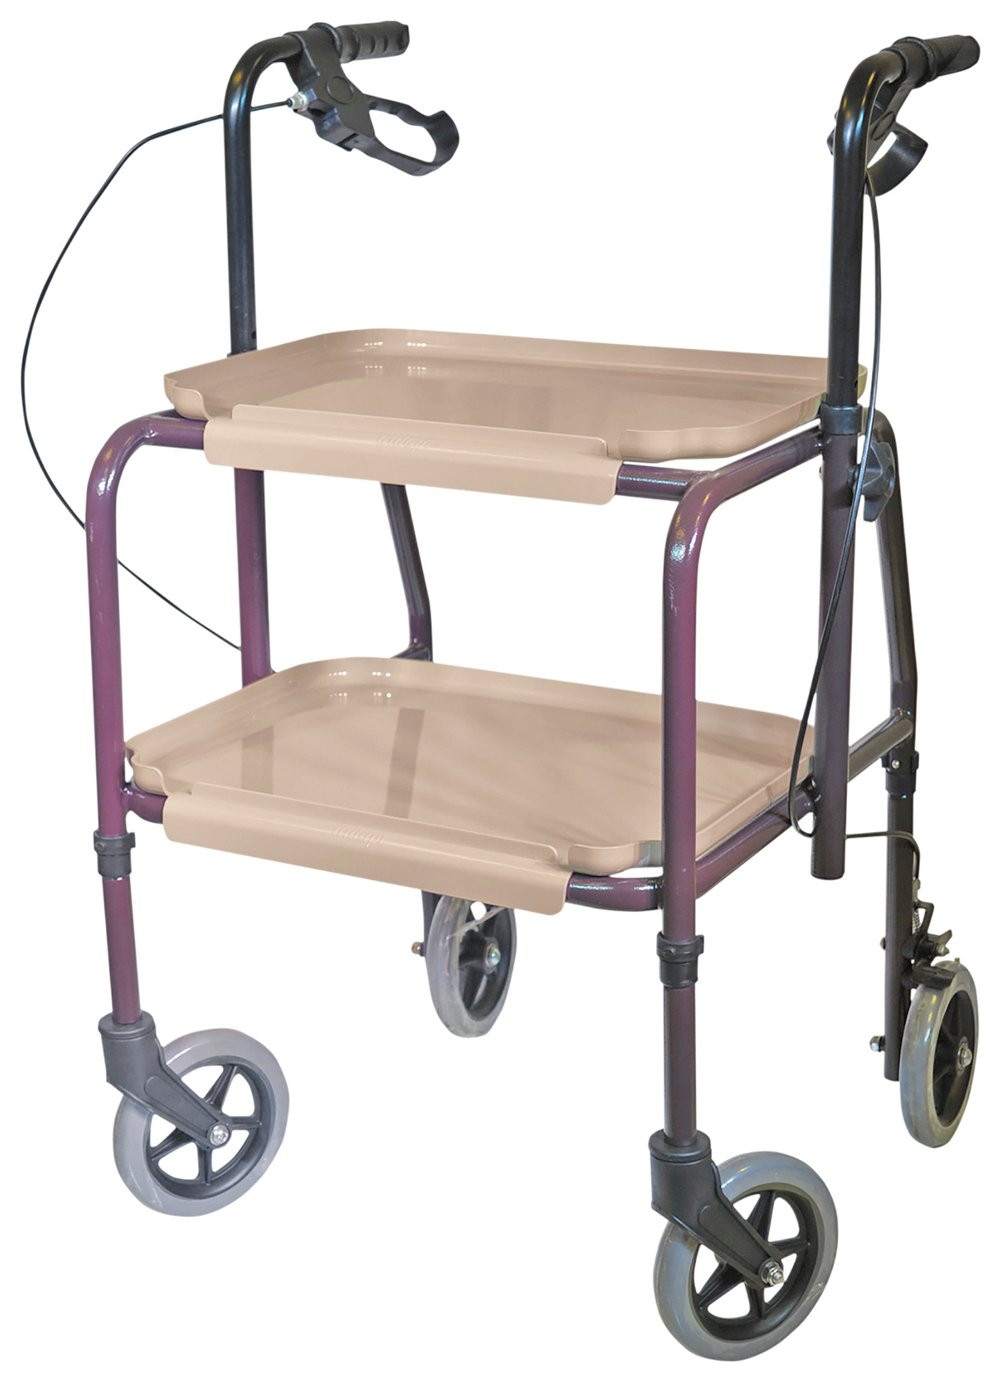 Aidapt Trolley with Brakes